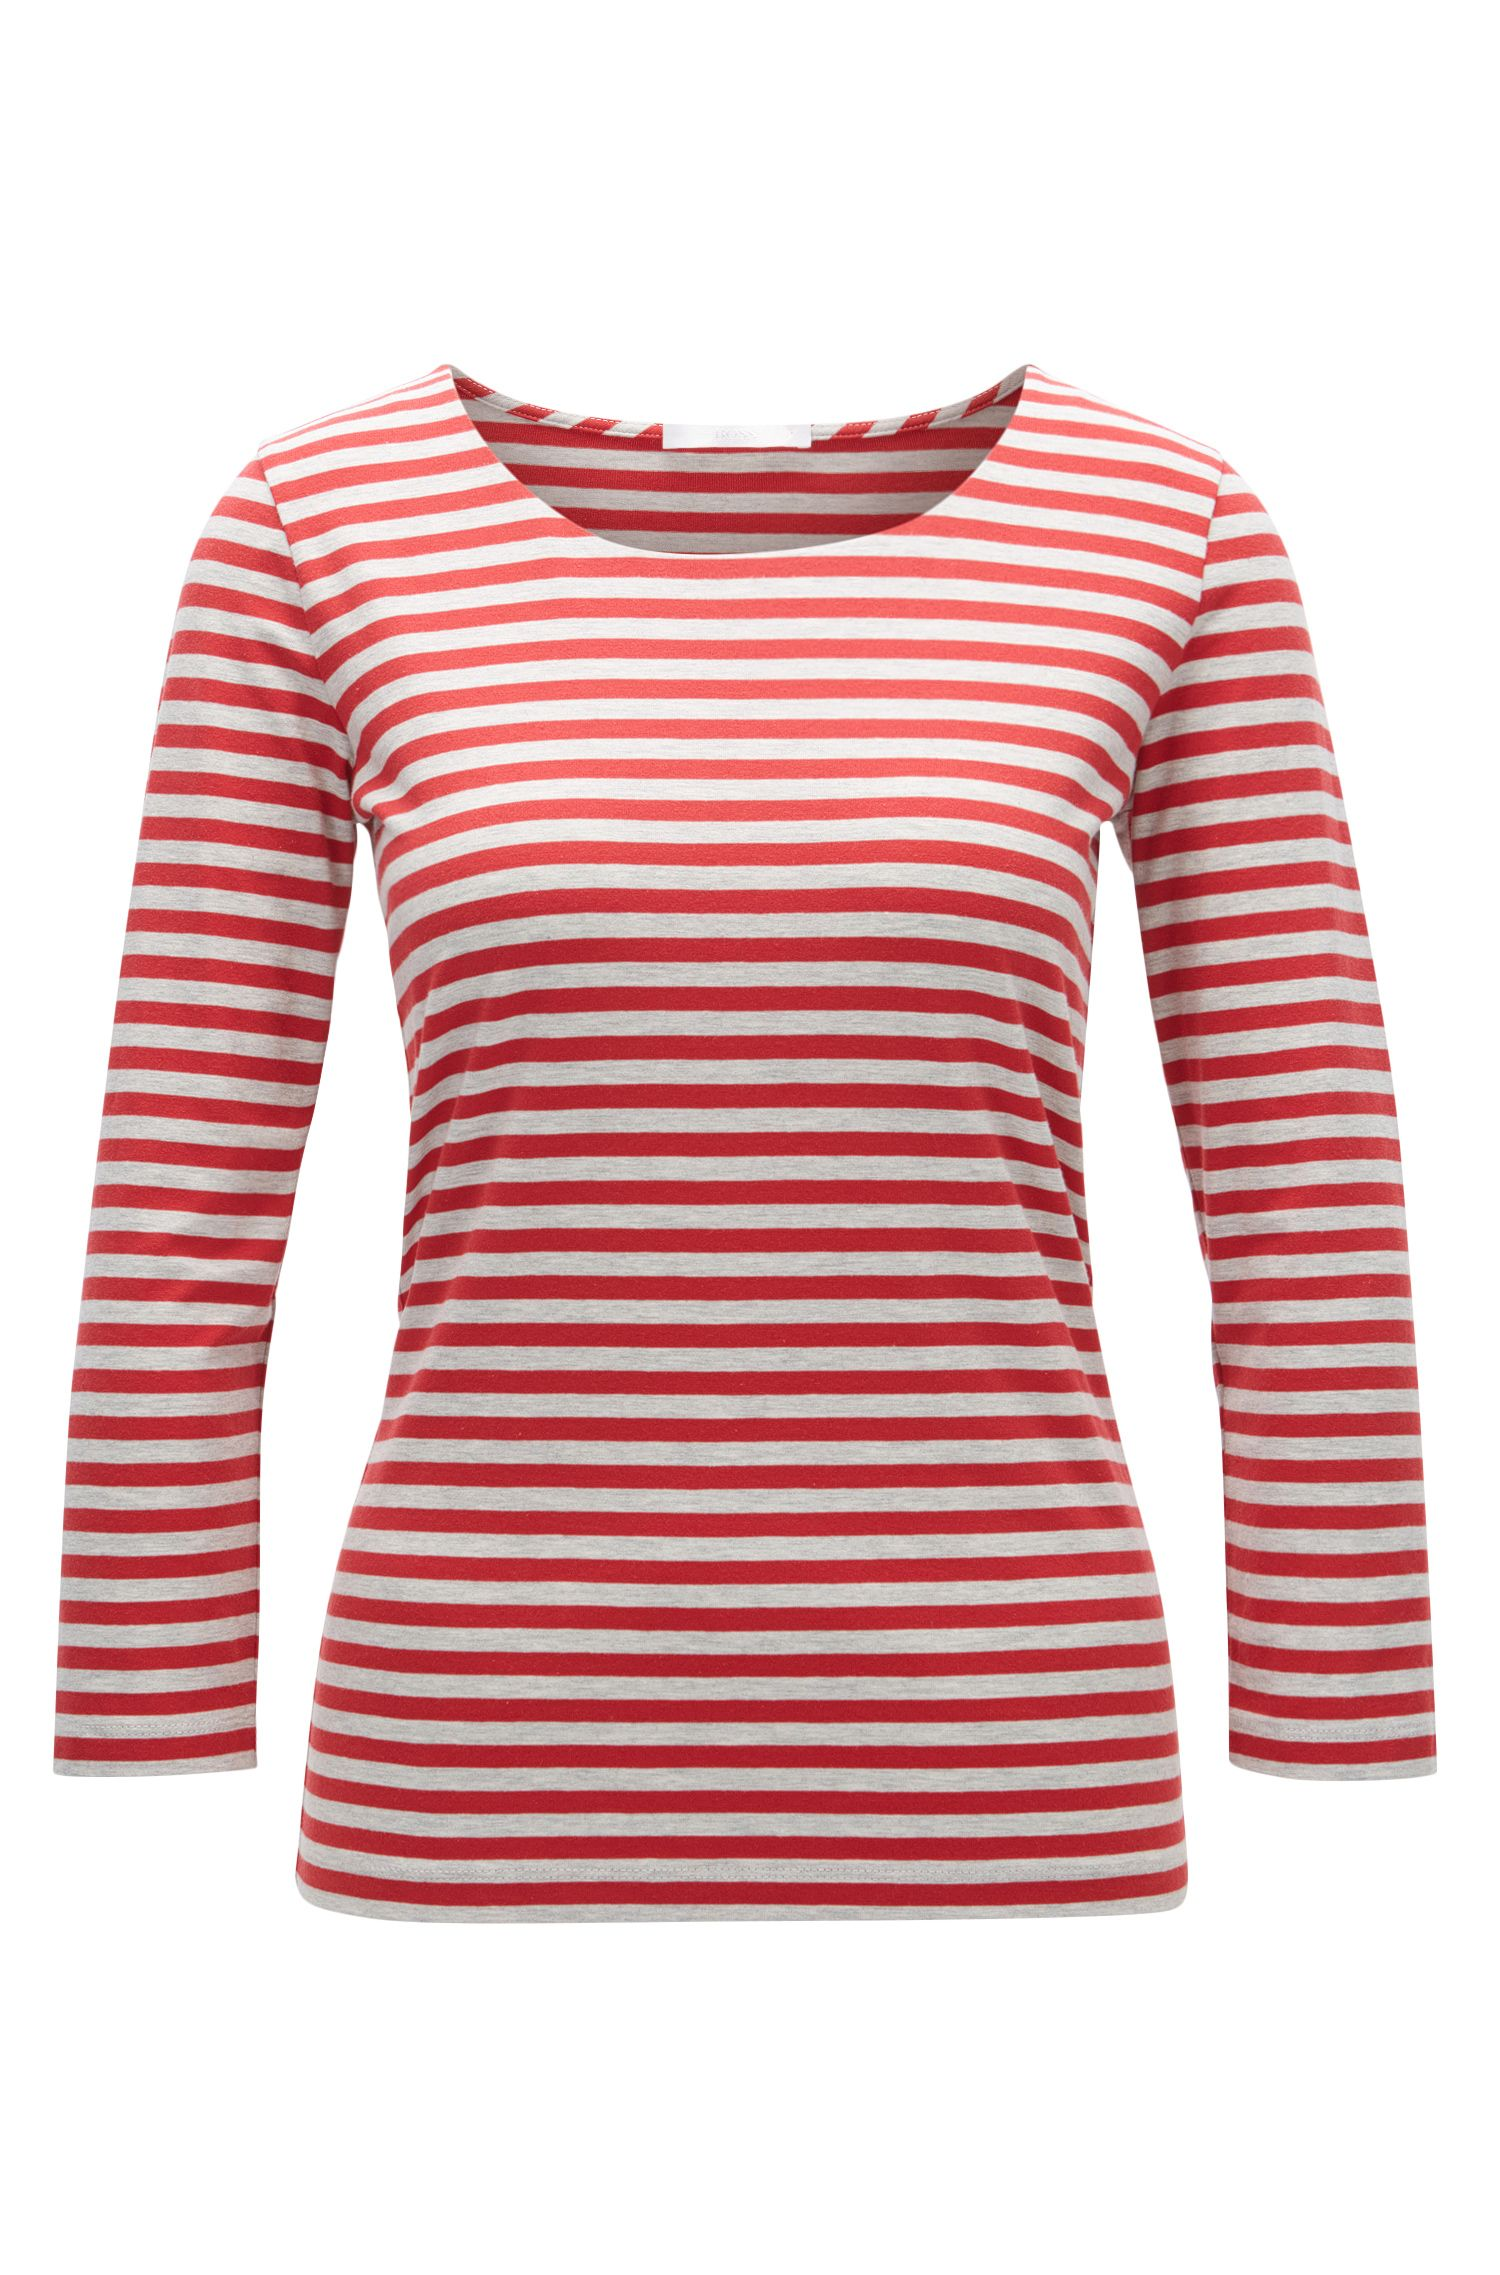 Regular-fit T-shirt in striped single jersey